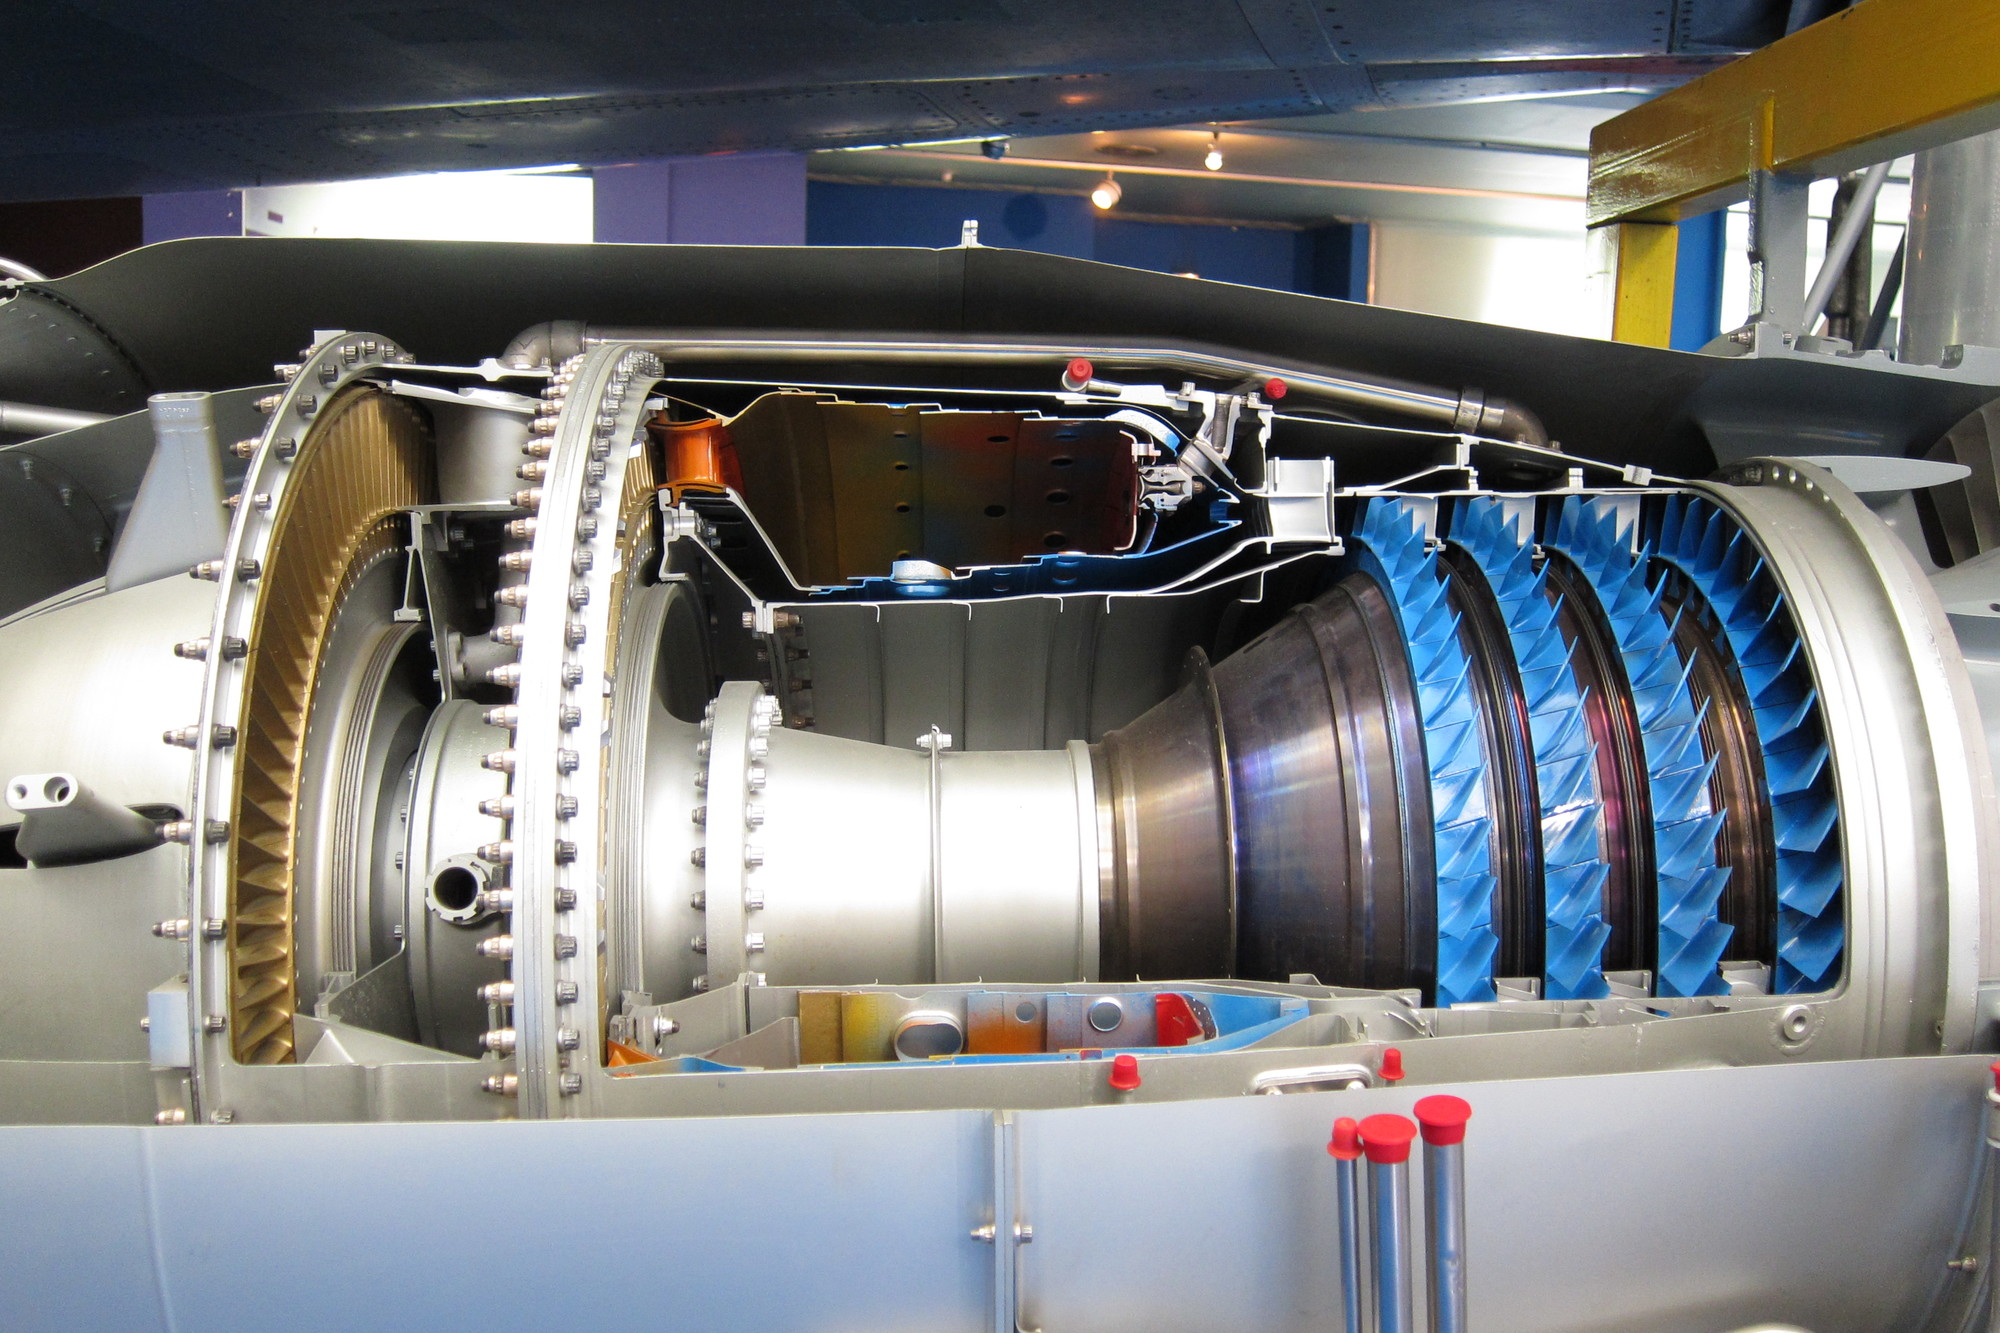 2/illustrations/rr_spey/Core_section_of_a_sectioned_Rolls-Royce_Turboméca_Adour_turbofan.jpg